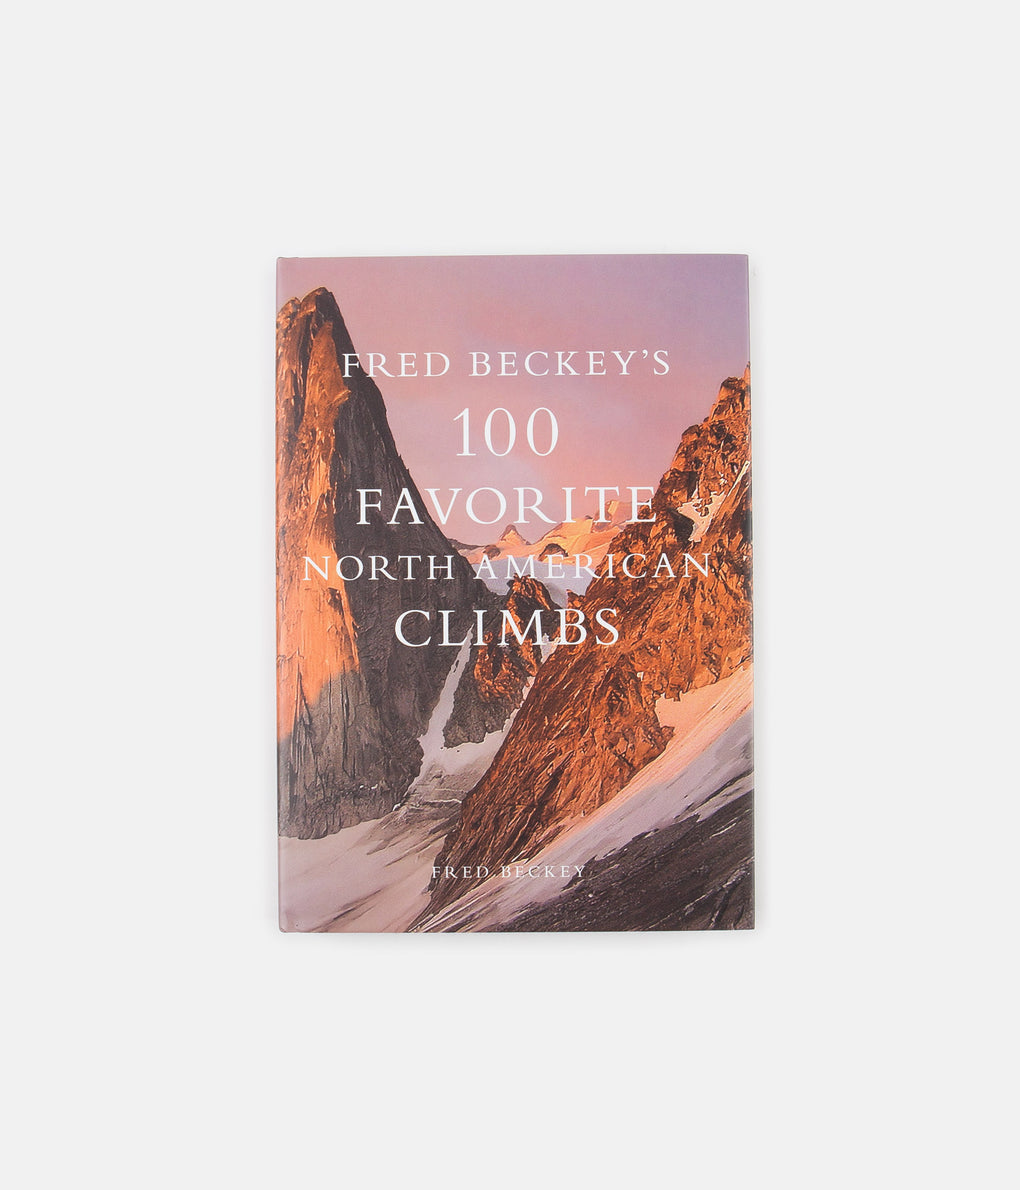 Fred Beckey's 100 Fav North American Climbs (Hardcover) - Fred Beckey